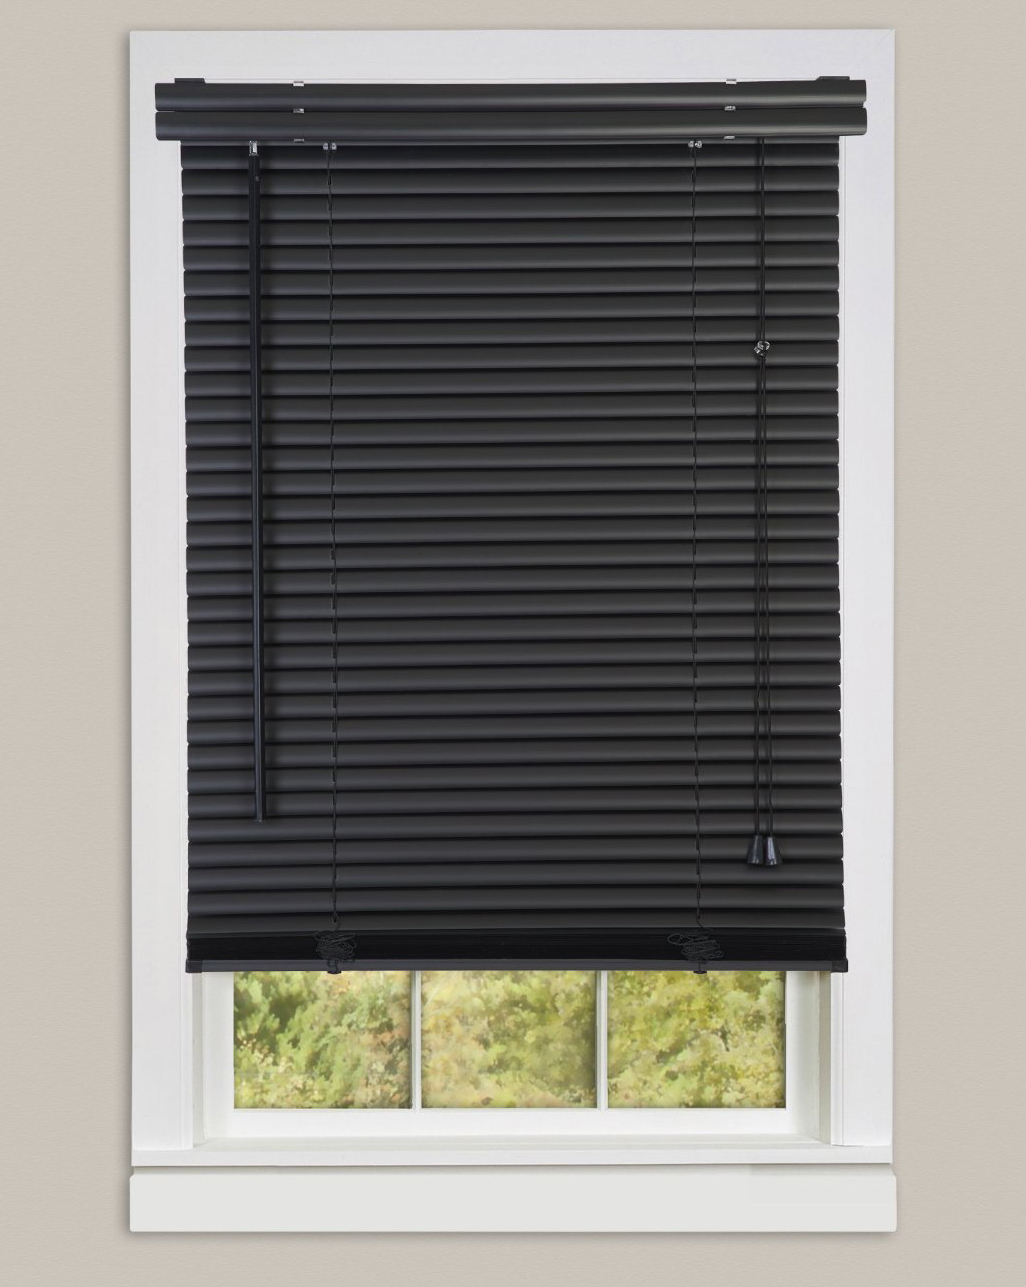 Black Window Blinds : Window blinds mini quot black vinyl blind ebay